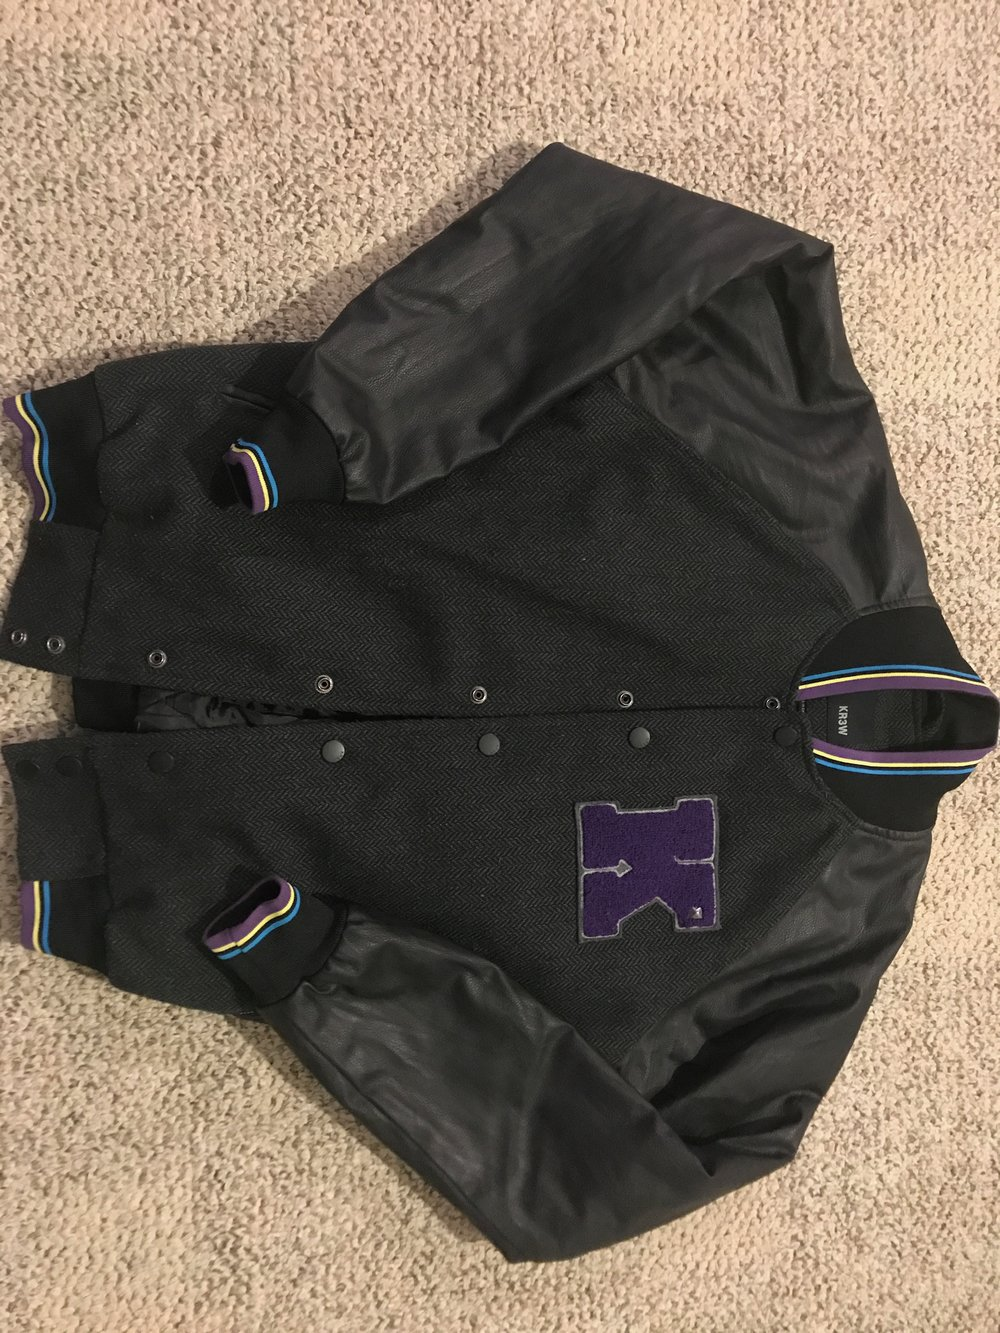 $20 GREAT CONDITION KR3W Varisty Bomber Jacket - RETAIL: $50